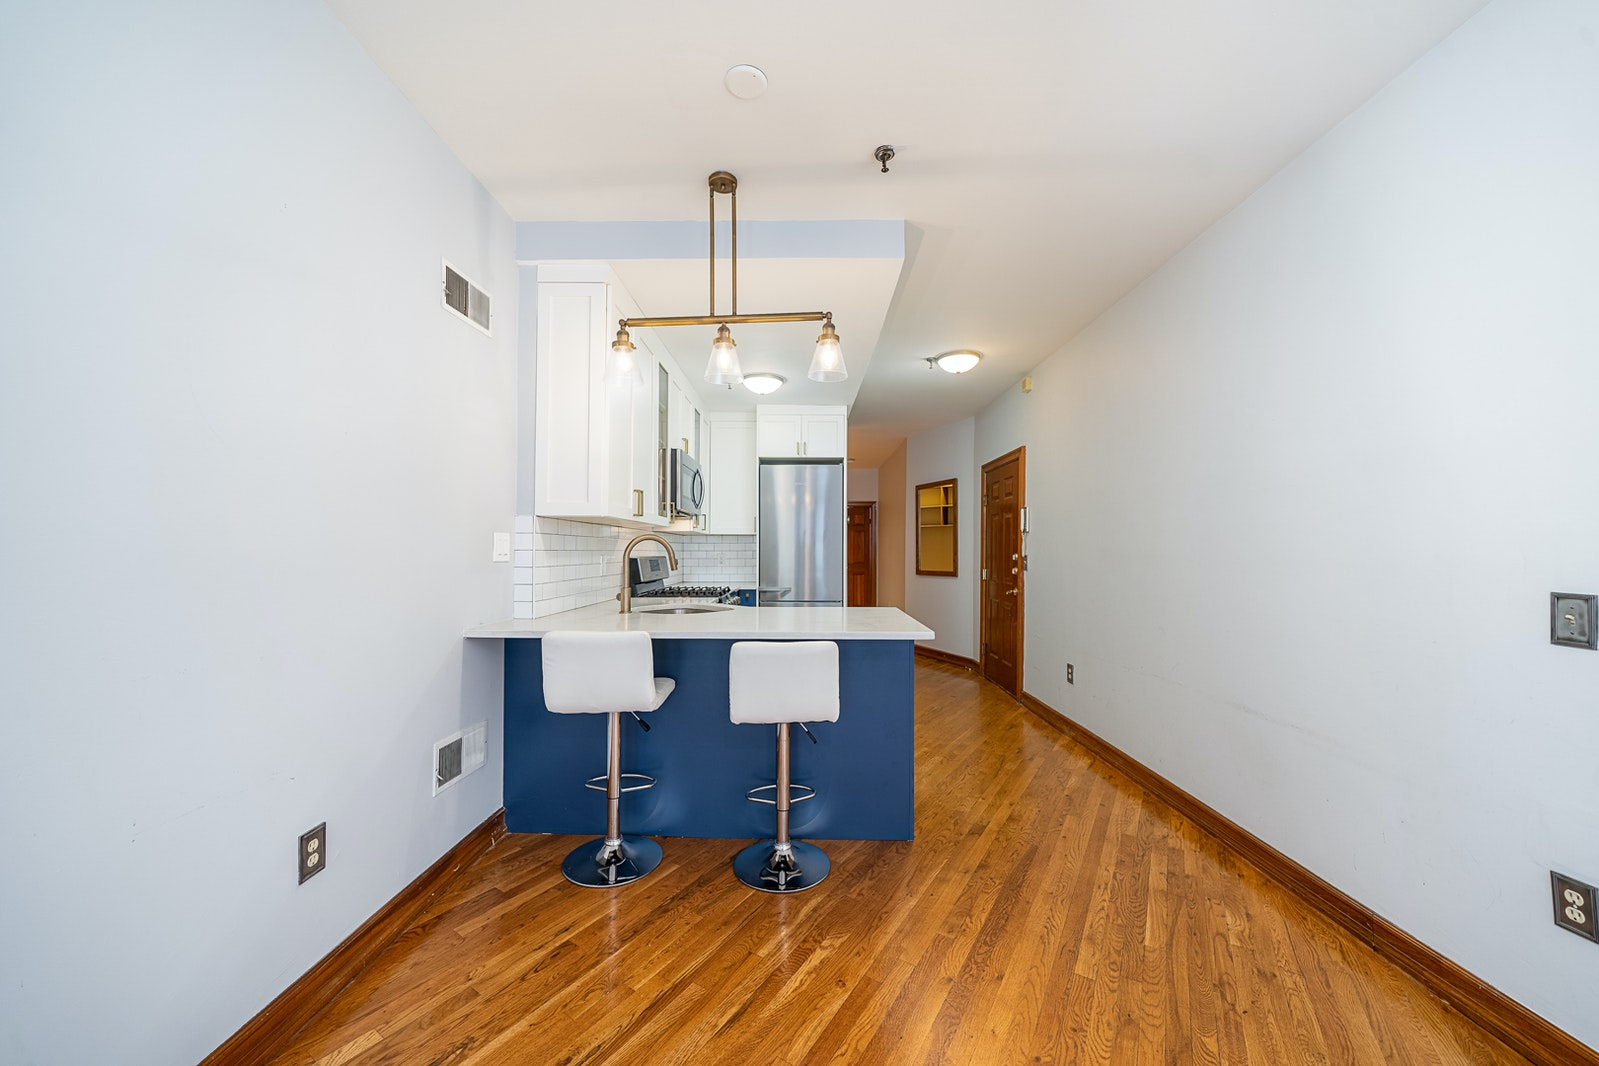 509 Madison St 1b, Hoboken, New Jersey, 07030, $625,000, Property For Sale, Halstead Real Estate, Photo 9